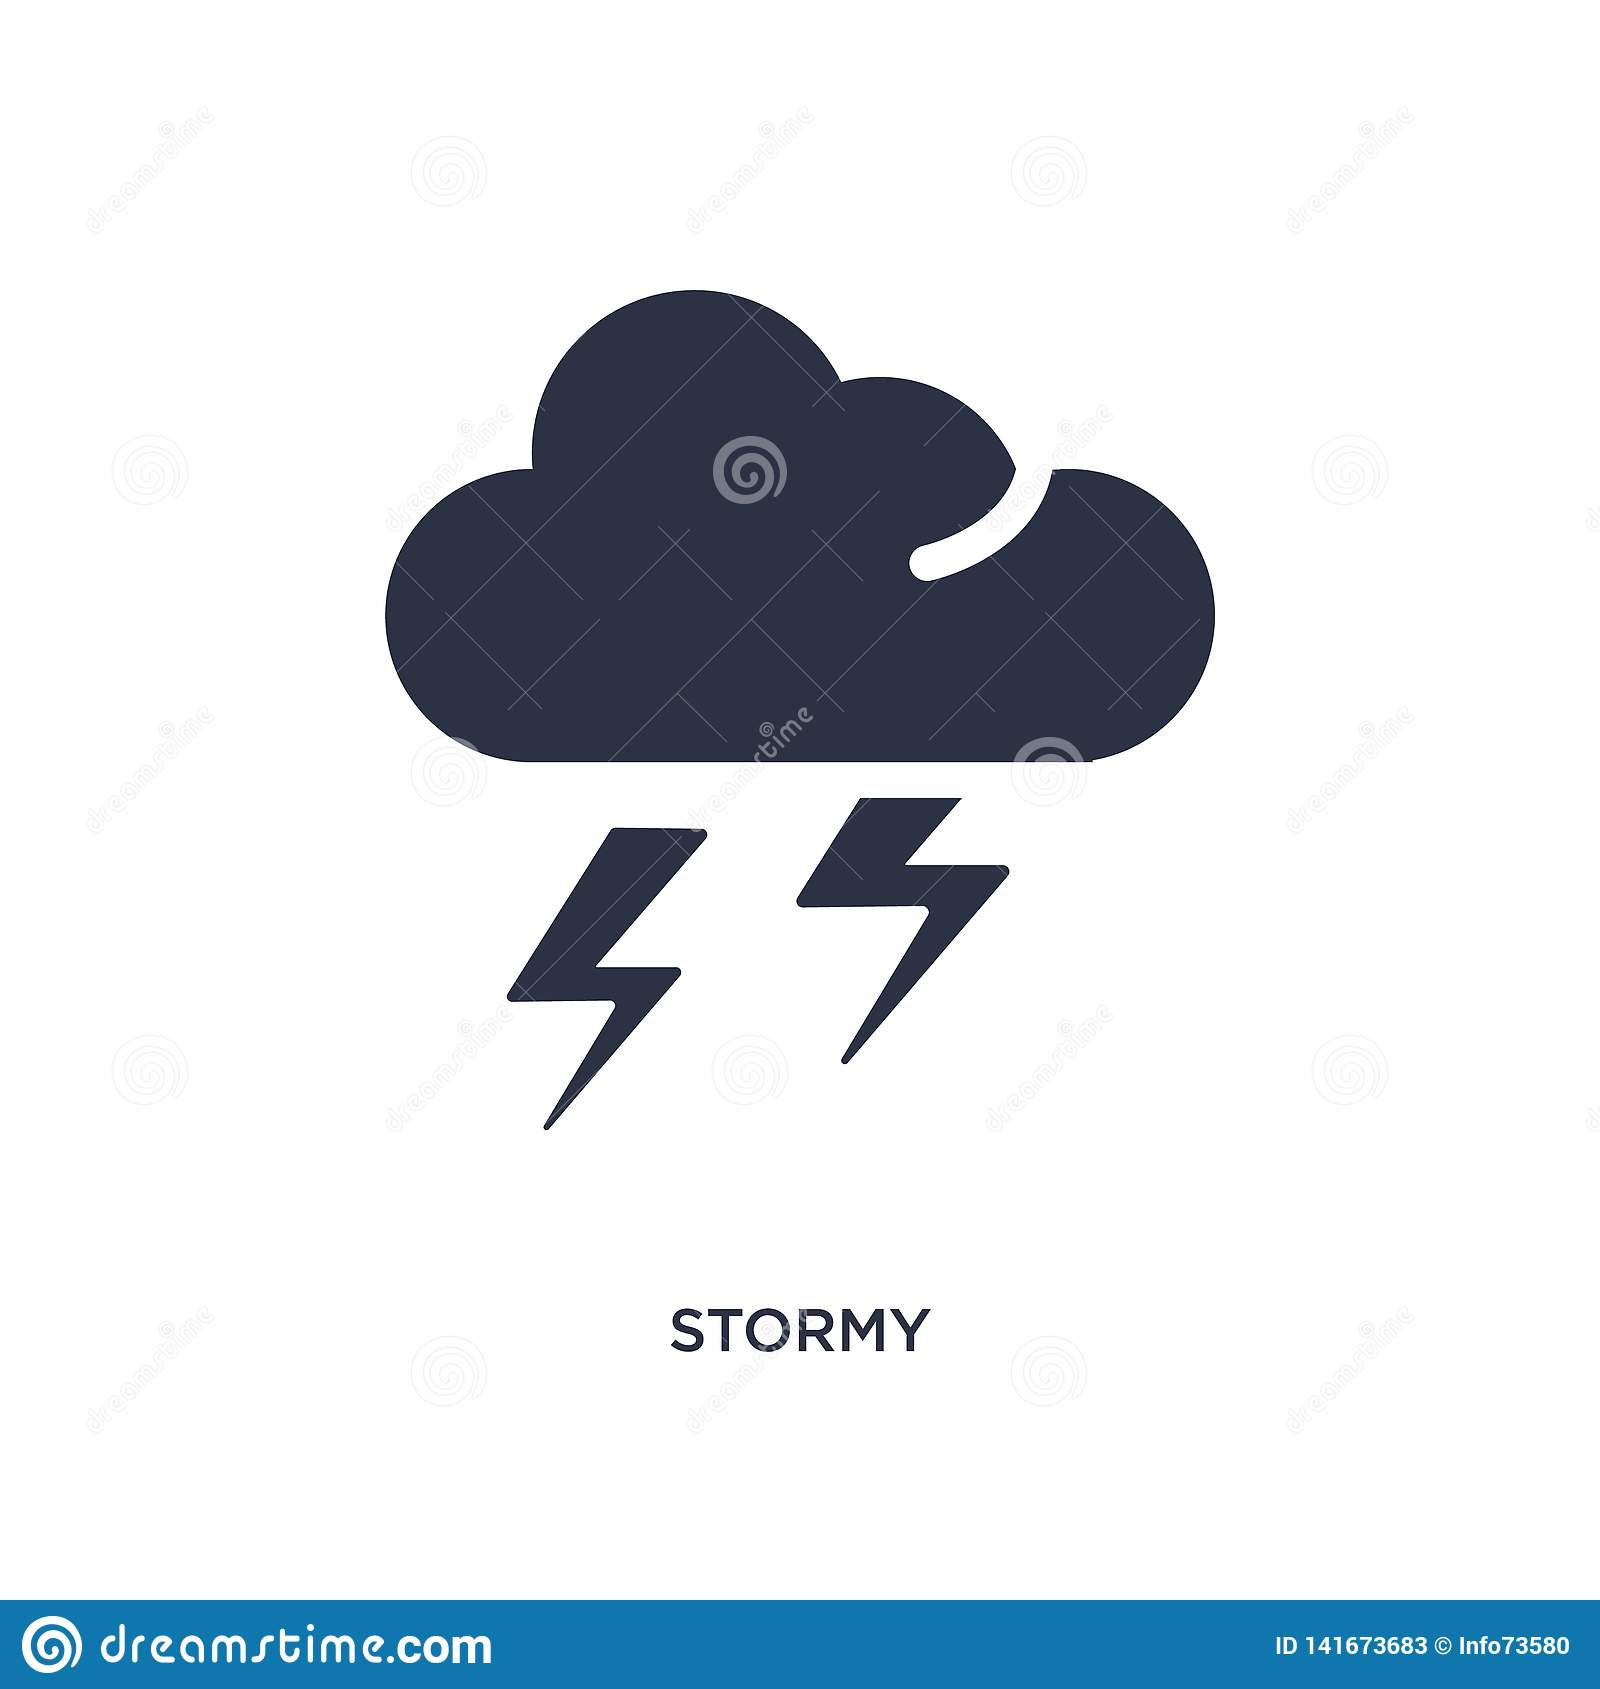 stormy icon on white background. Simple element illustration from weather concept